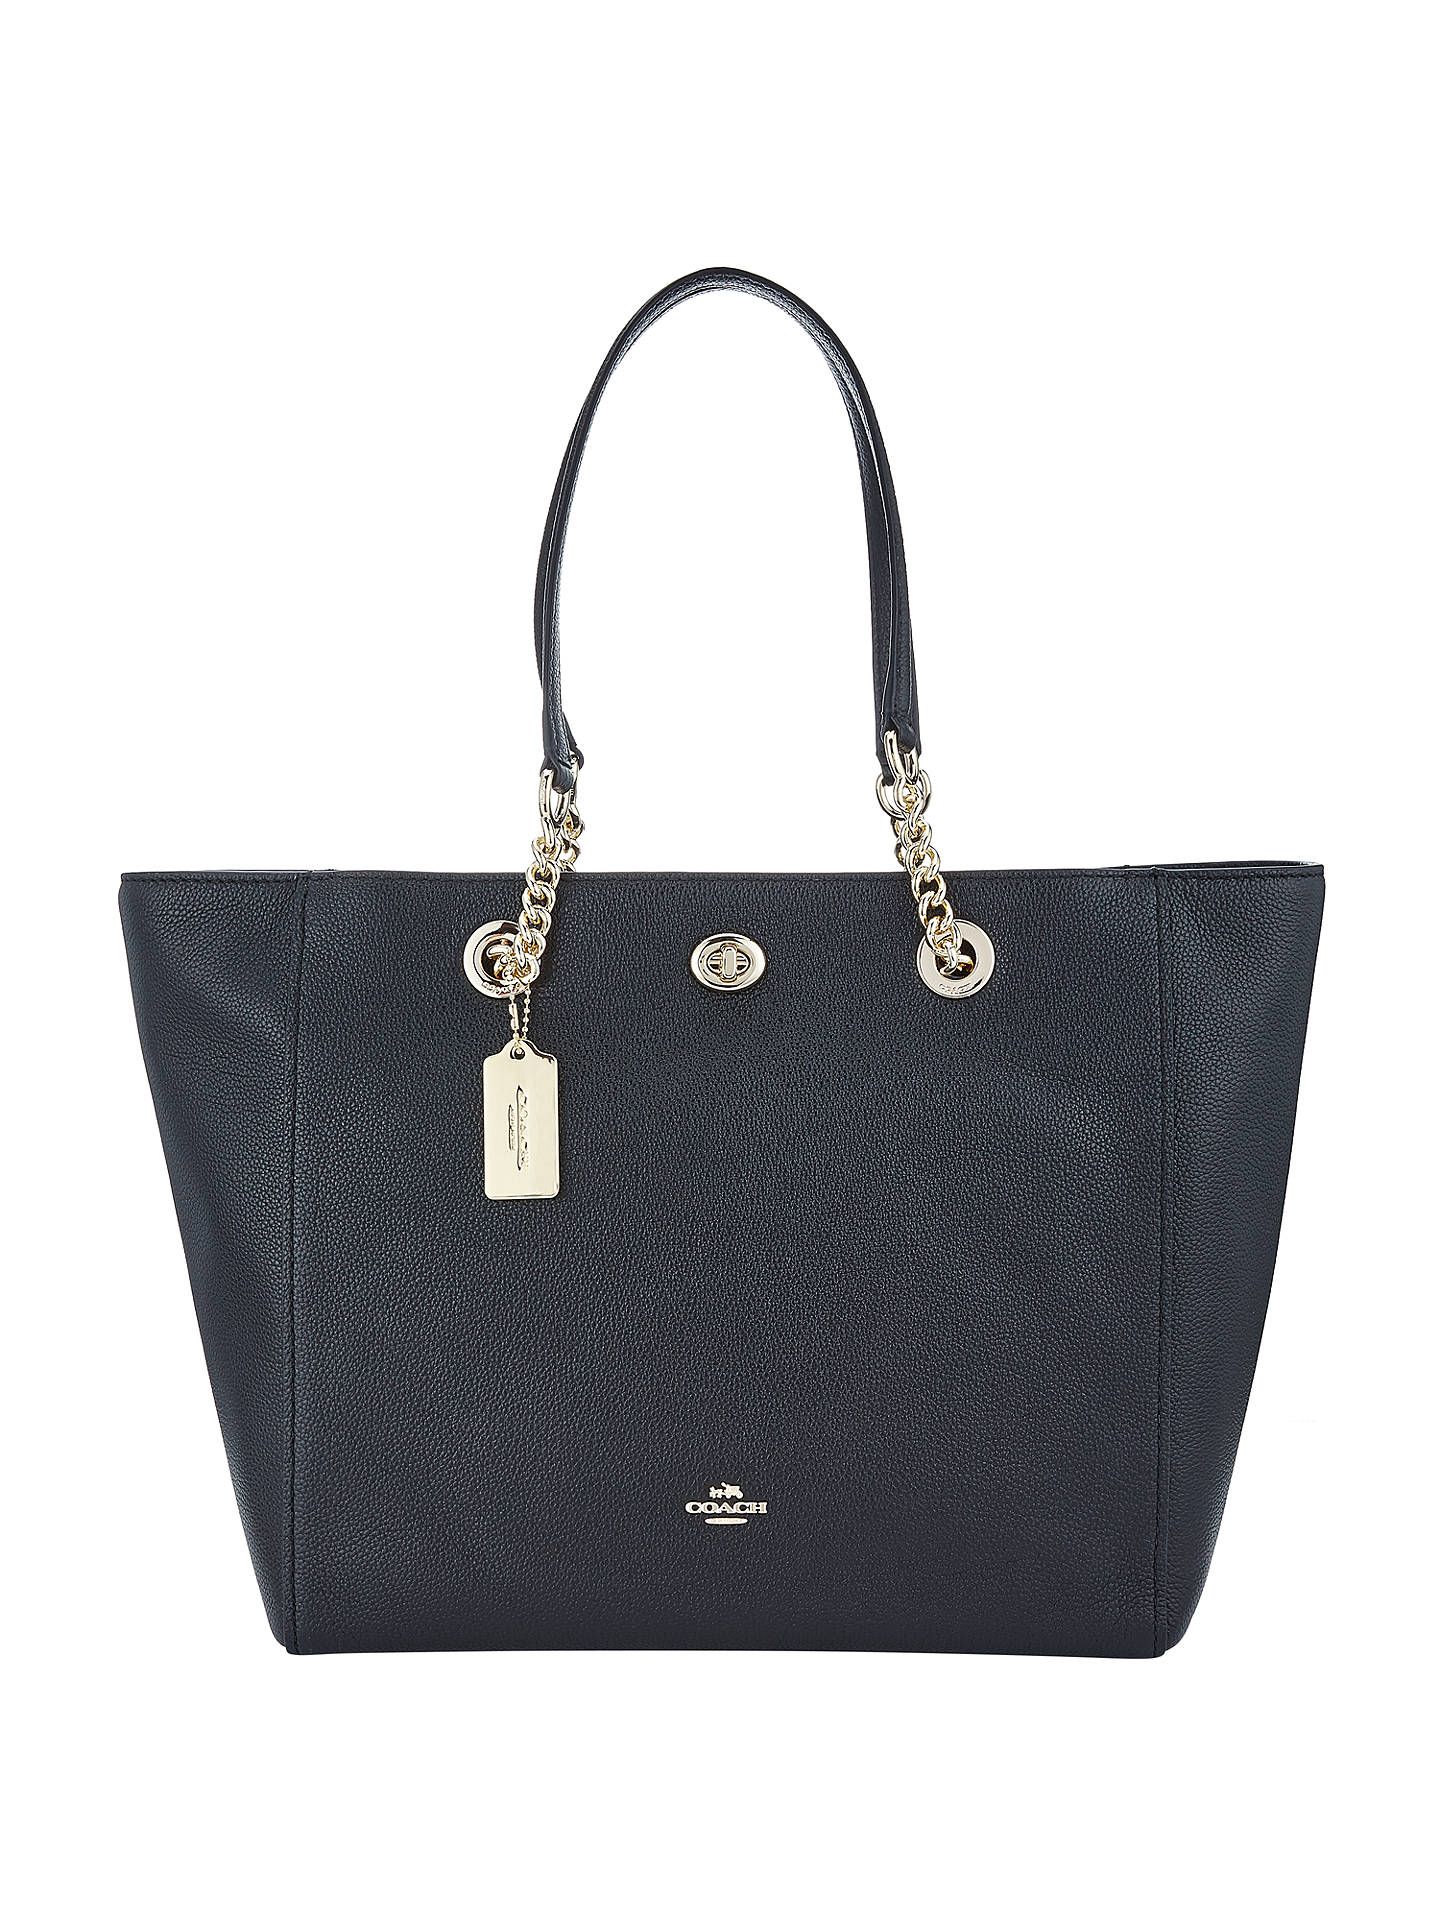 726554d49d21 where to buy buycoach turnlock chain crossgrain leather tote bag black  online at johnlewis caedd ff270